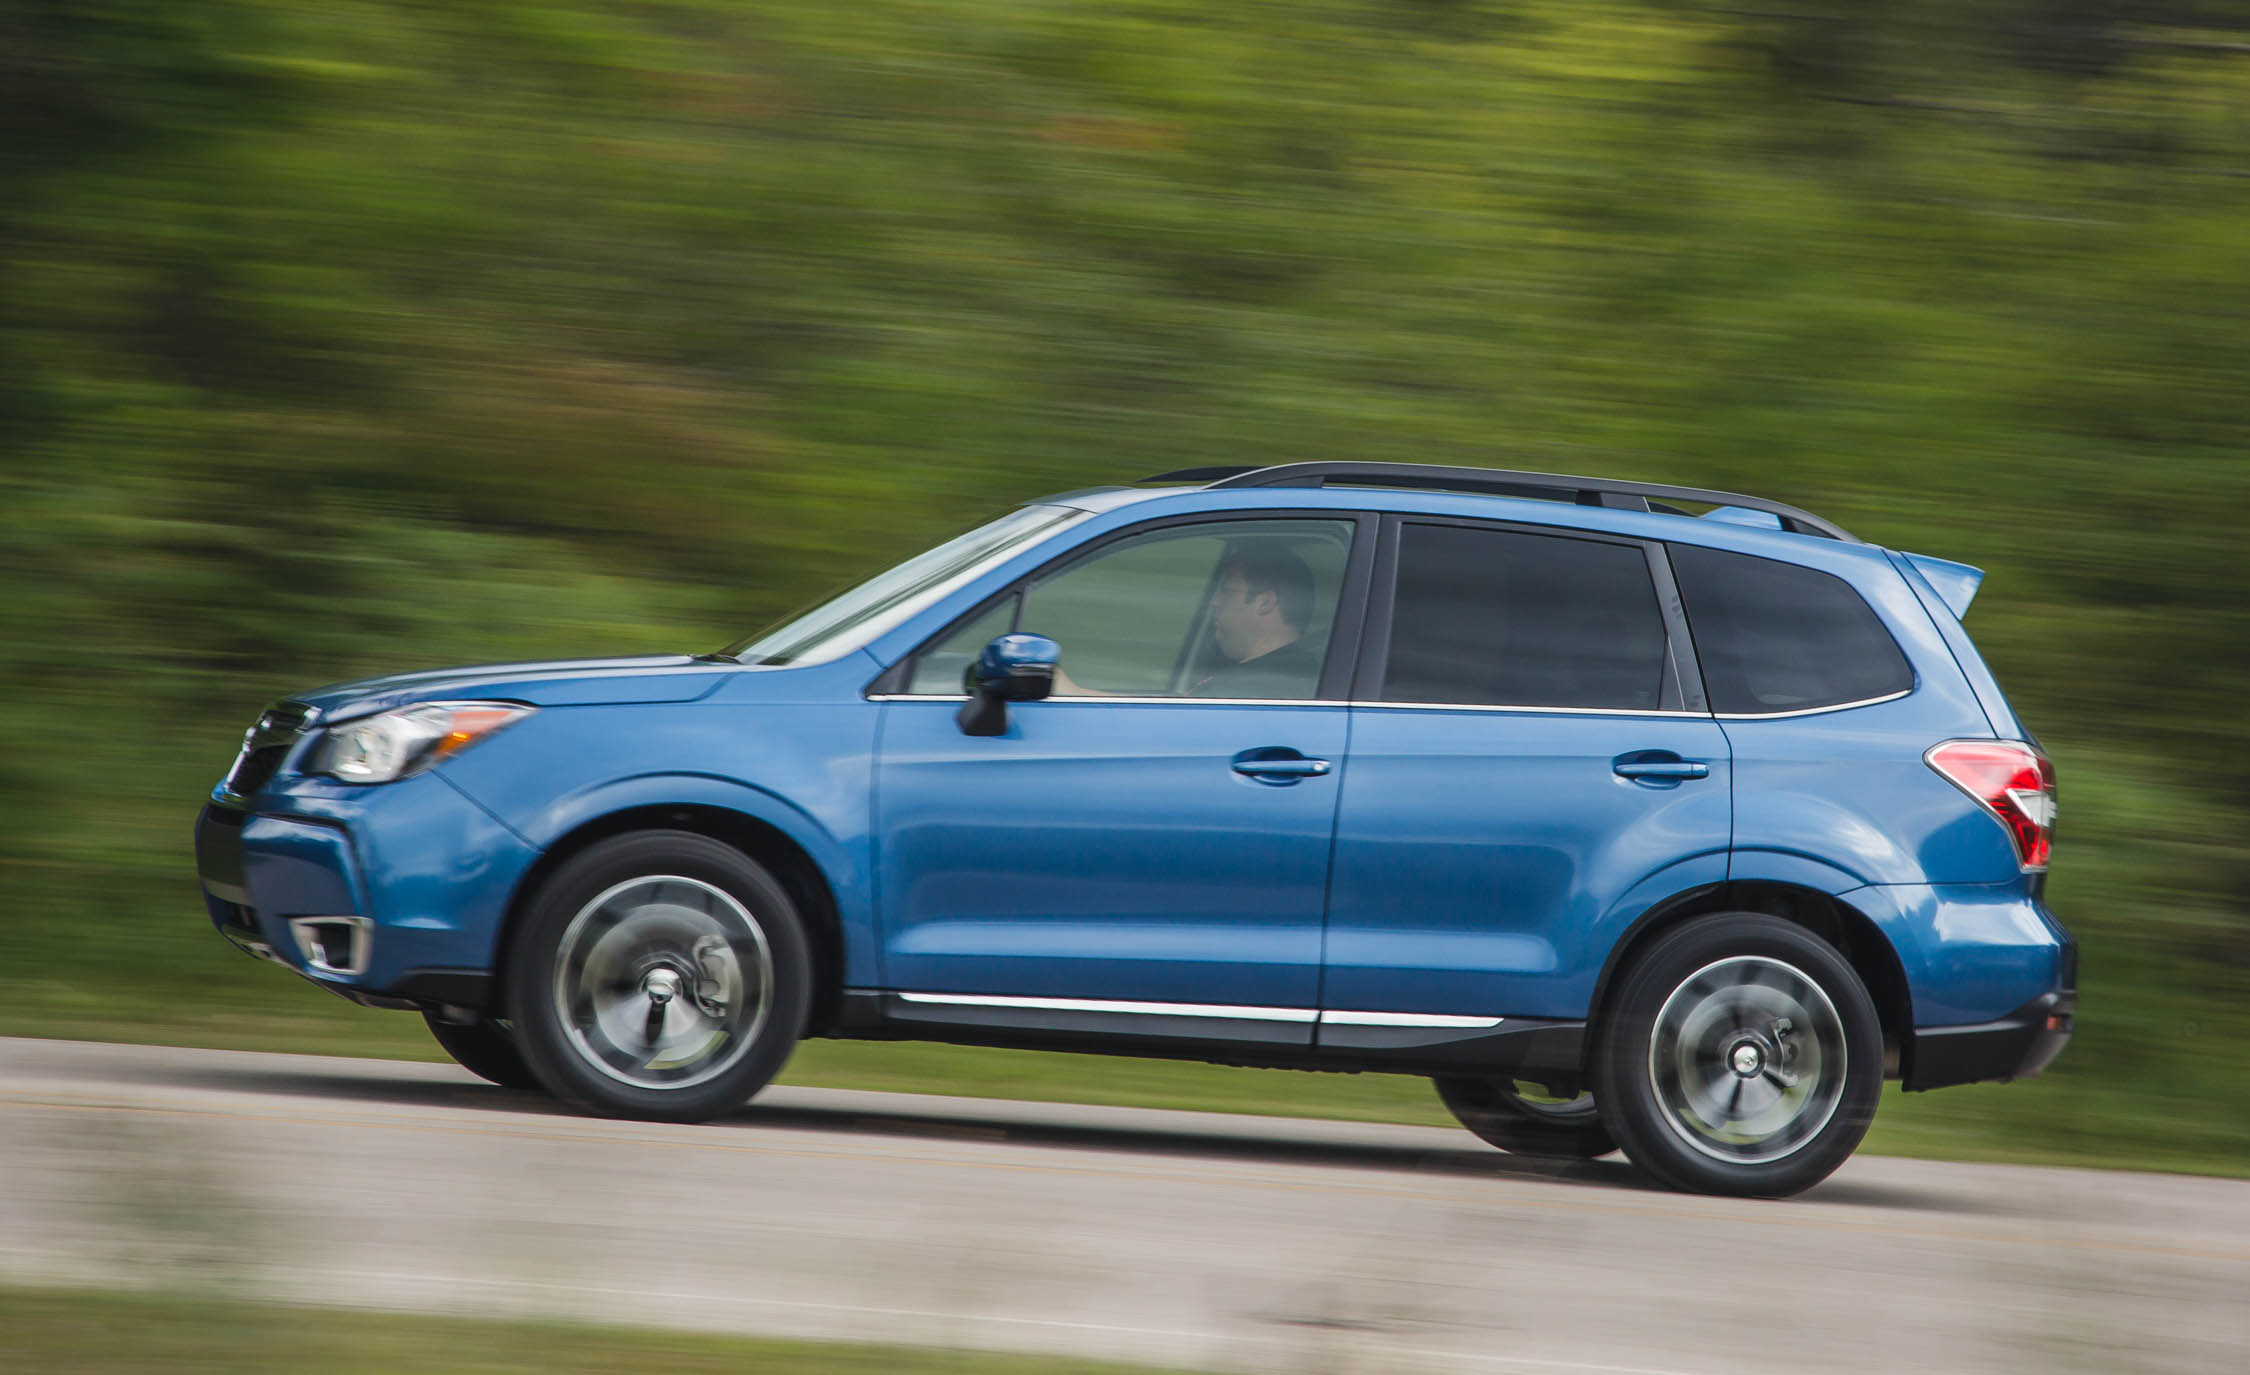 2016 Subaru Forester 2 0xt Touring Test Drive (Photo 26 of 29)